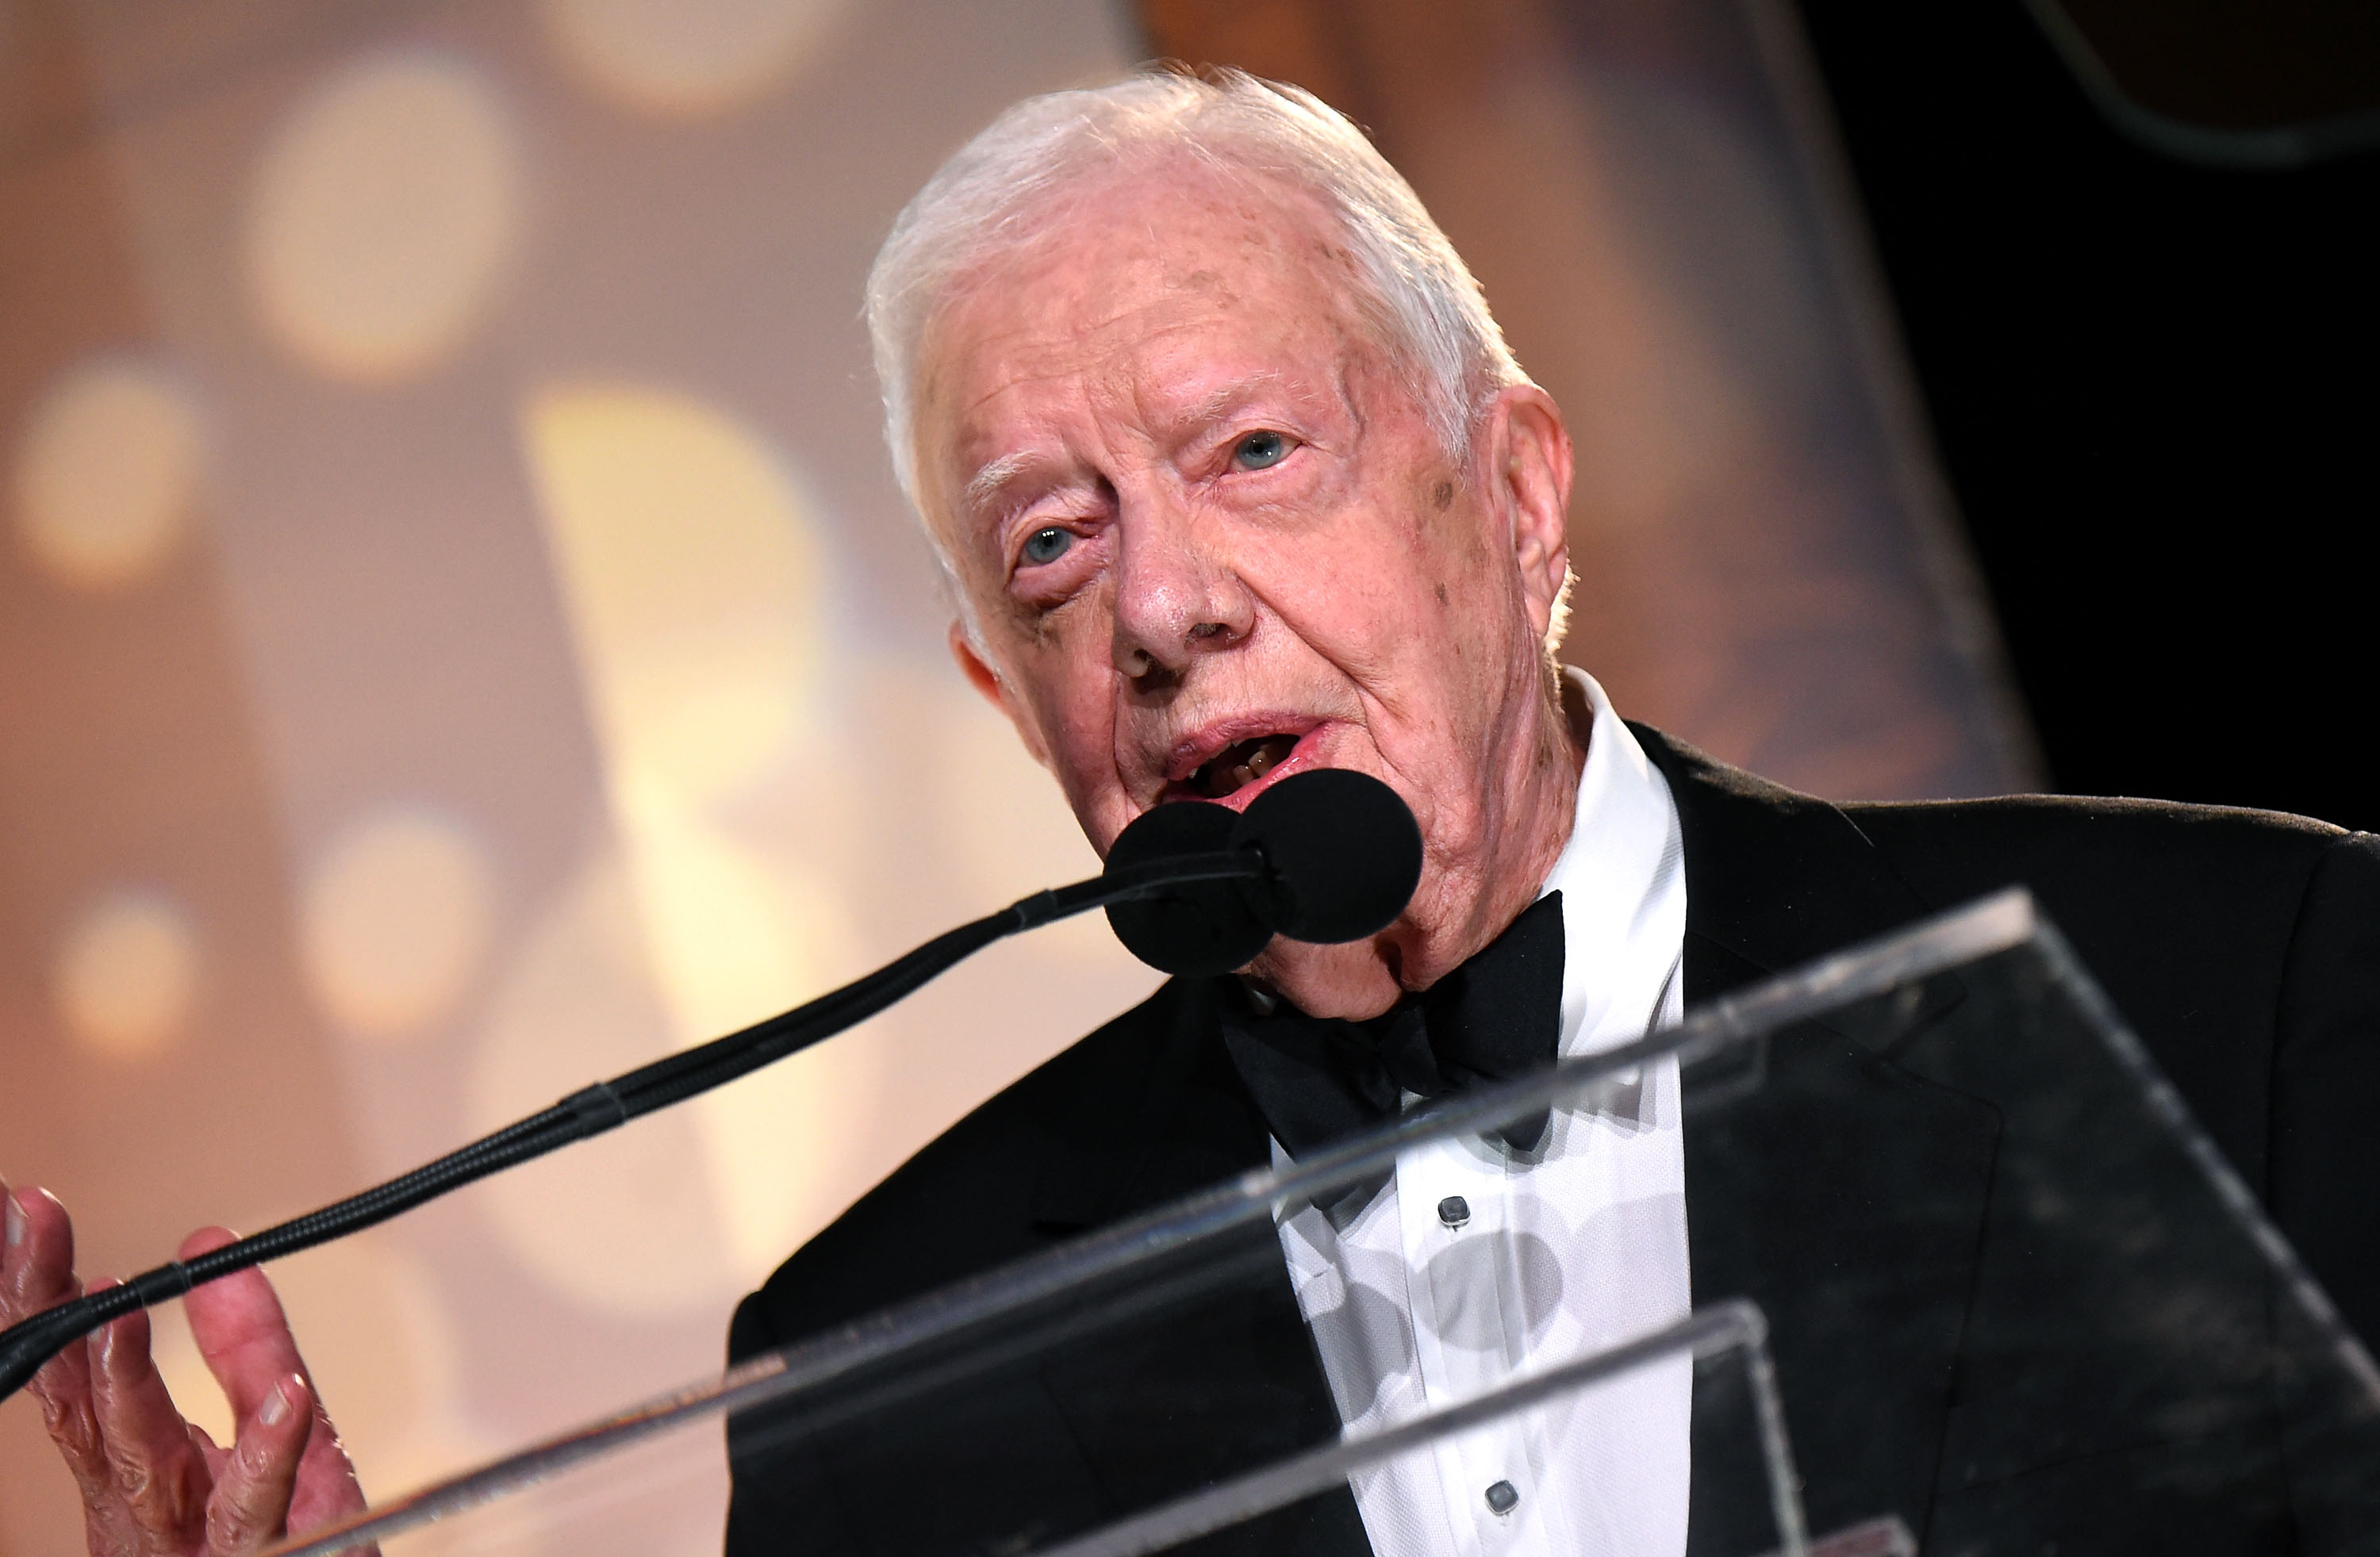 President Jimmy Carter presents Trisha Yearwood (not pictured) with the Voice of Music Award during the 53rd annual ASCAP Country Music awards at the Omni Hotel on Nov. 2, 2015 in Nashville.